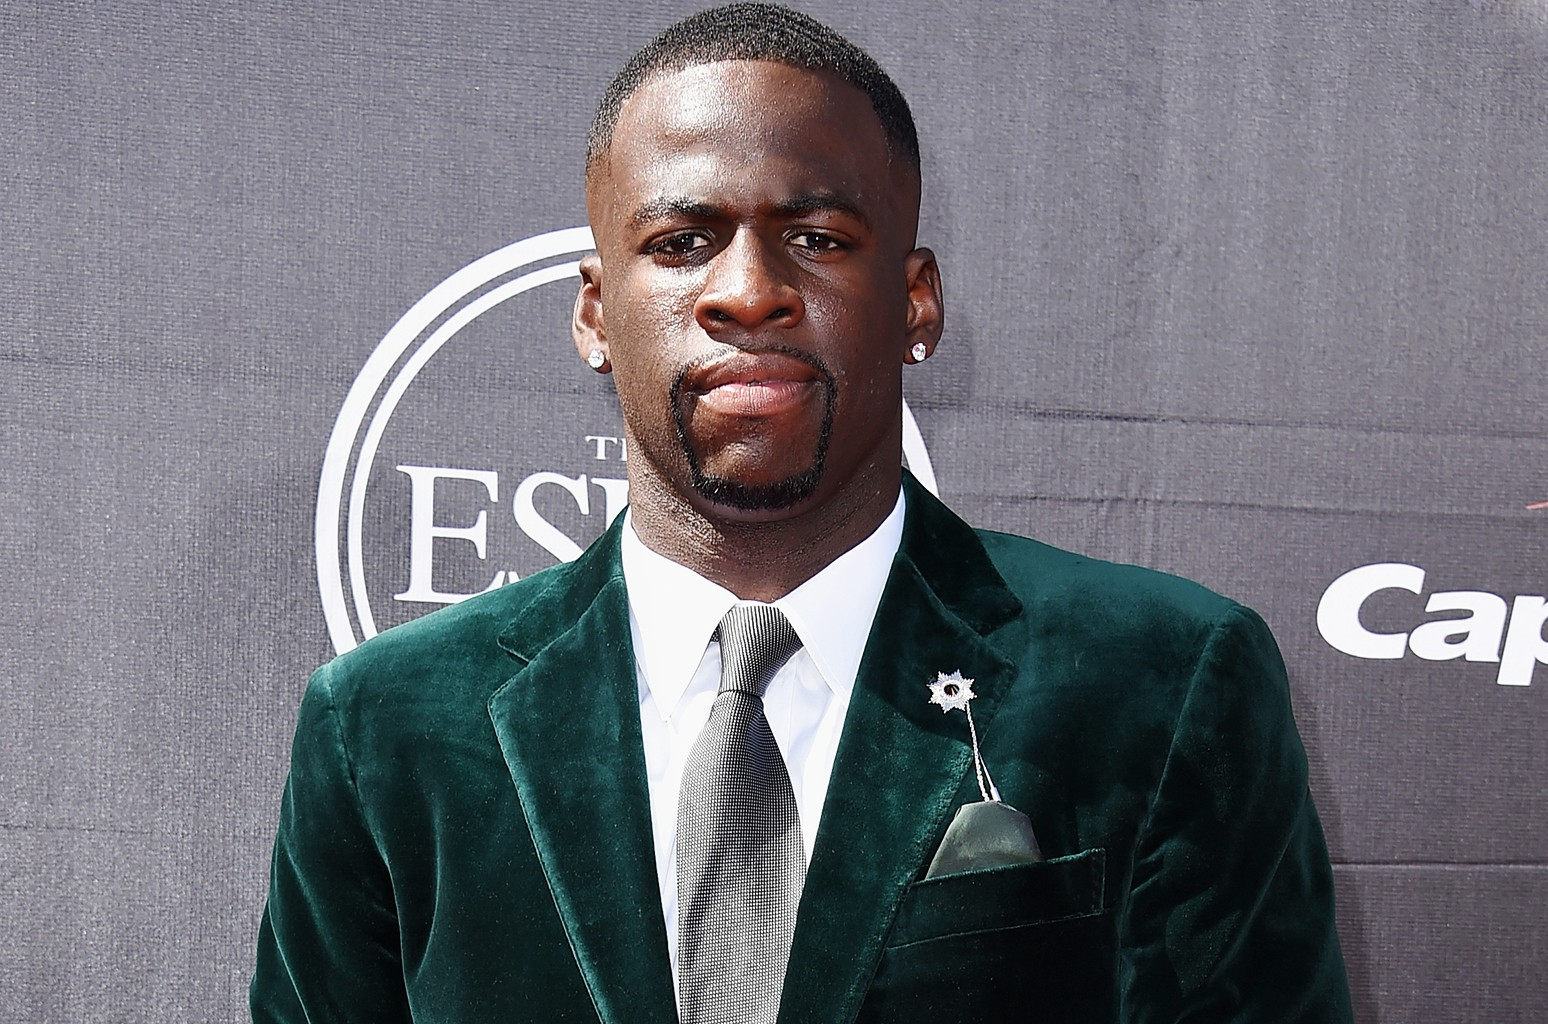 NBA player Draymond Green attends The 2015 ESPYS at Microsoft Theater on July 15, 2015 in Los Angeles.